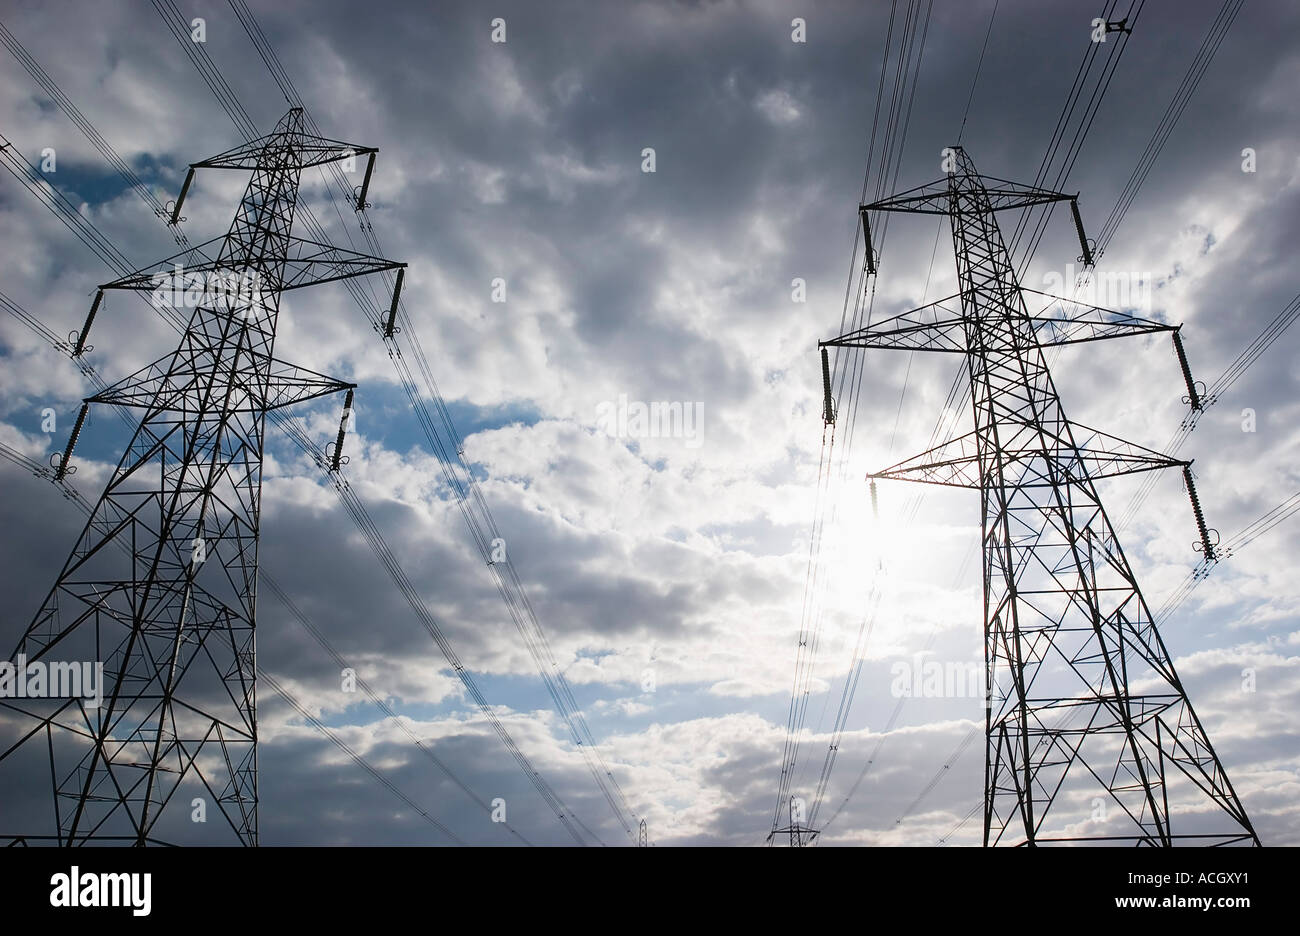 Electricity National Grid Electrical